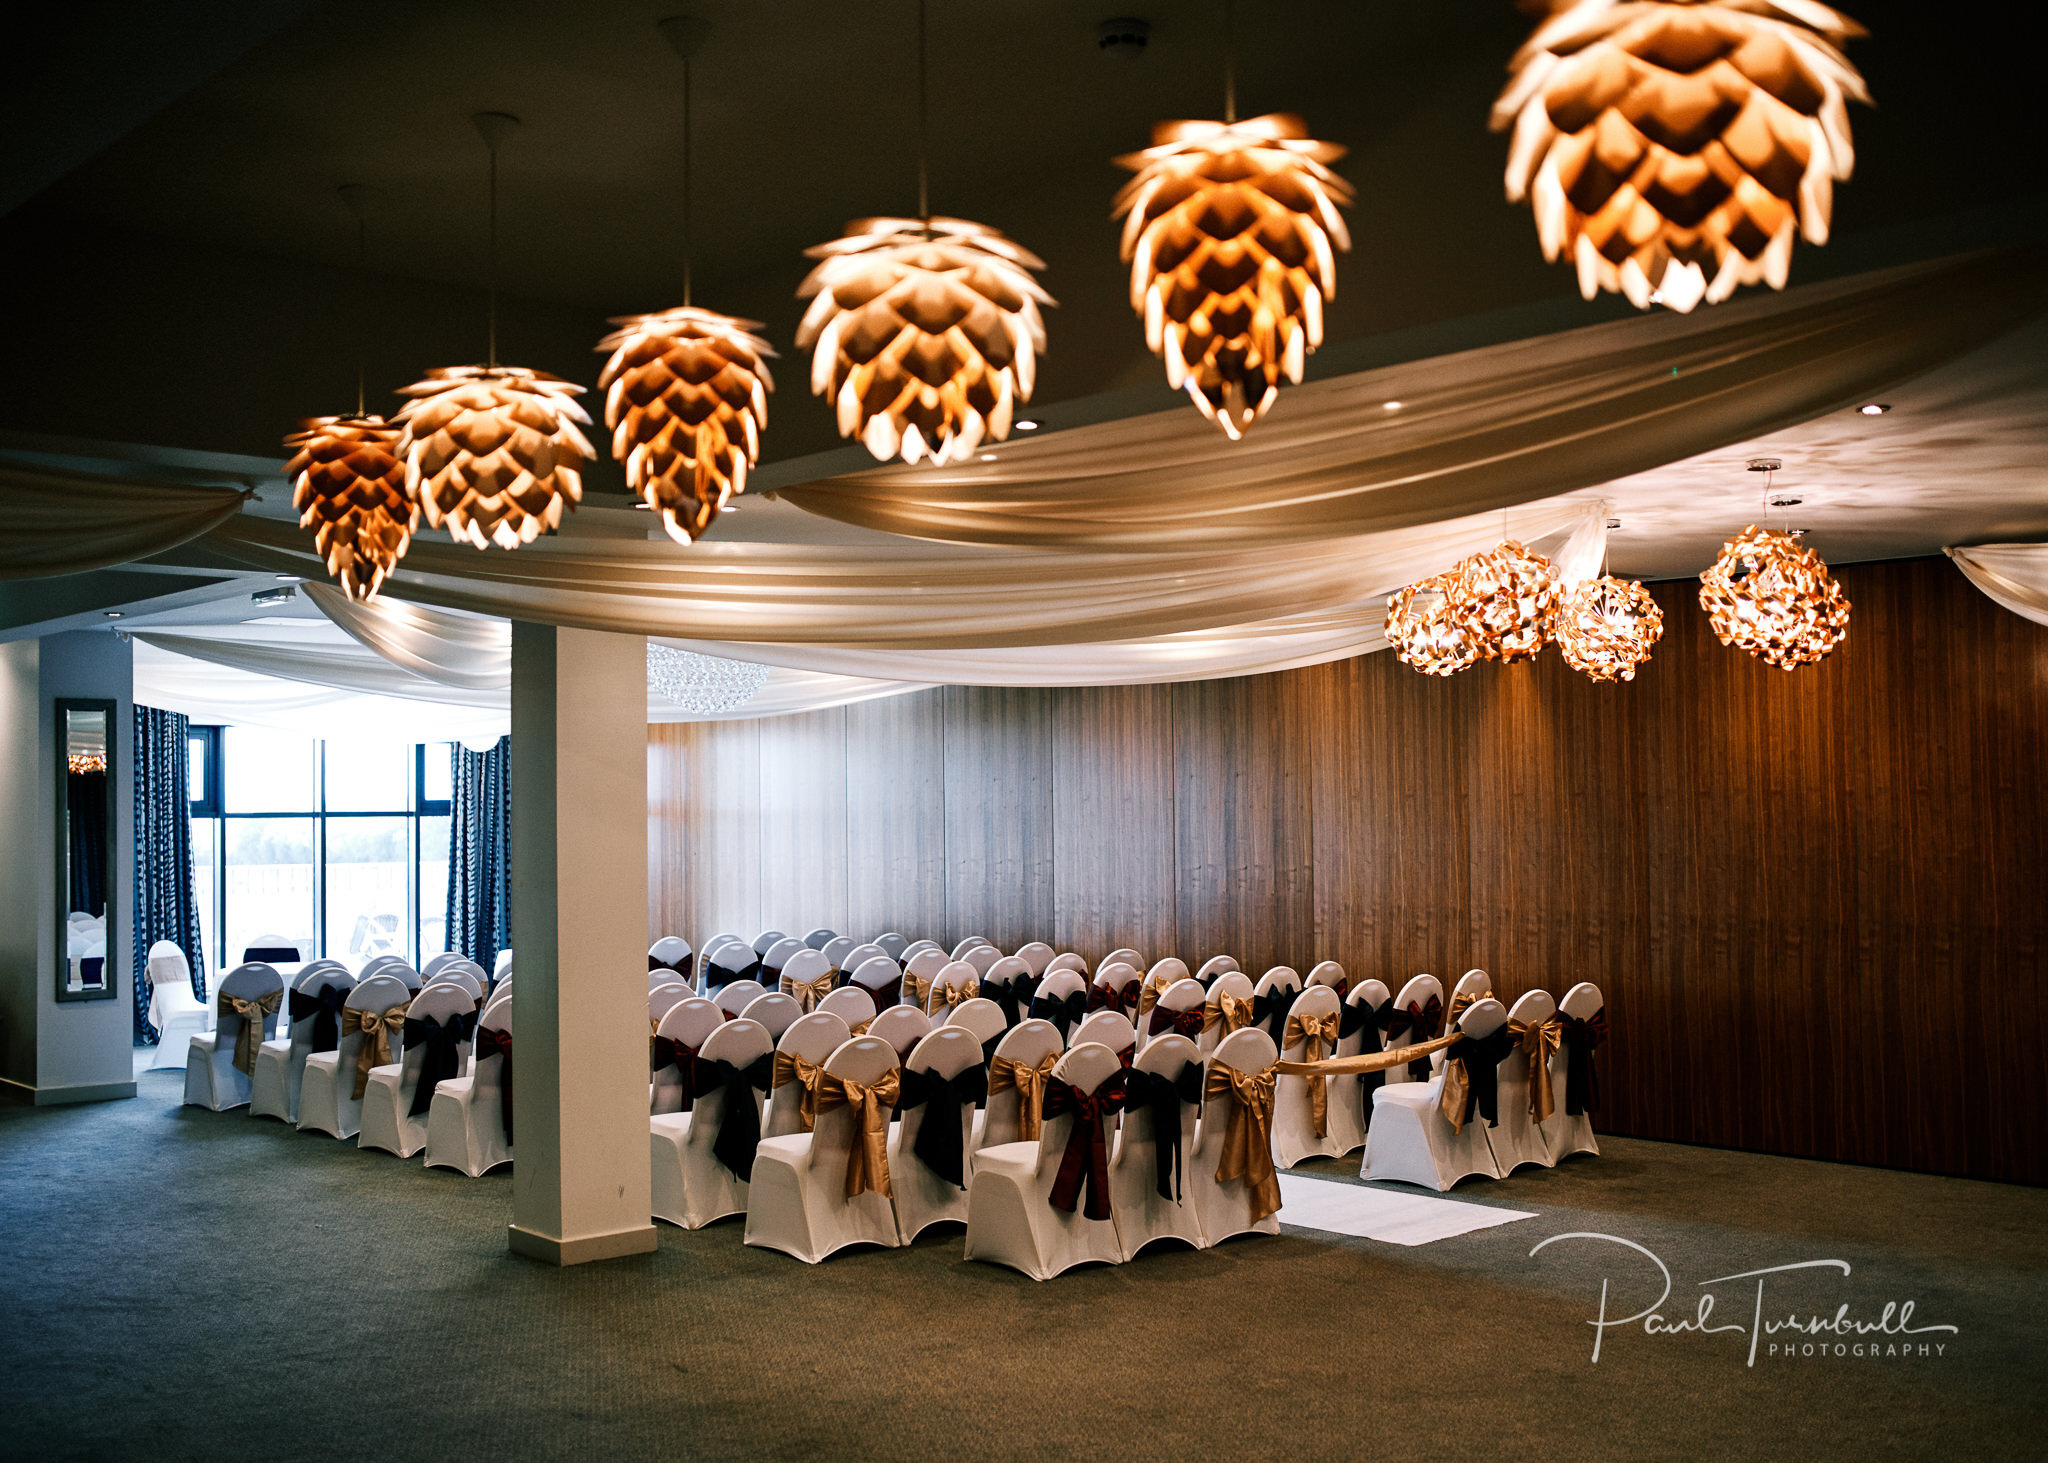 Pavilion Suite Ceremony room at Lazaat Hotel. Wedding photographer Hull